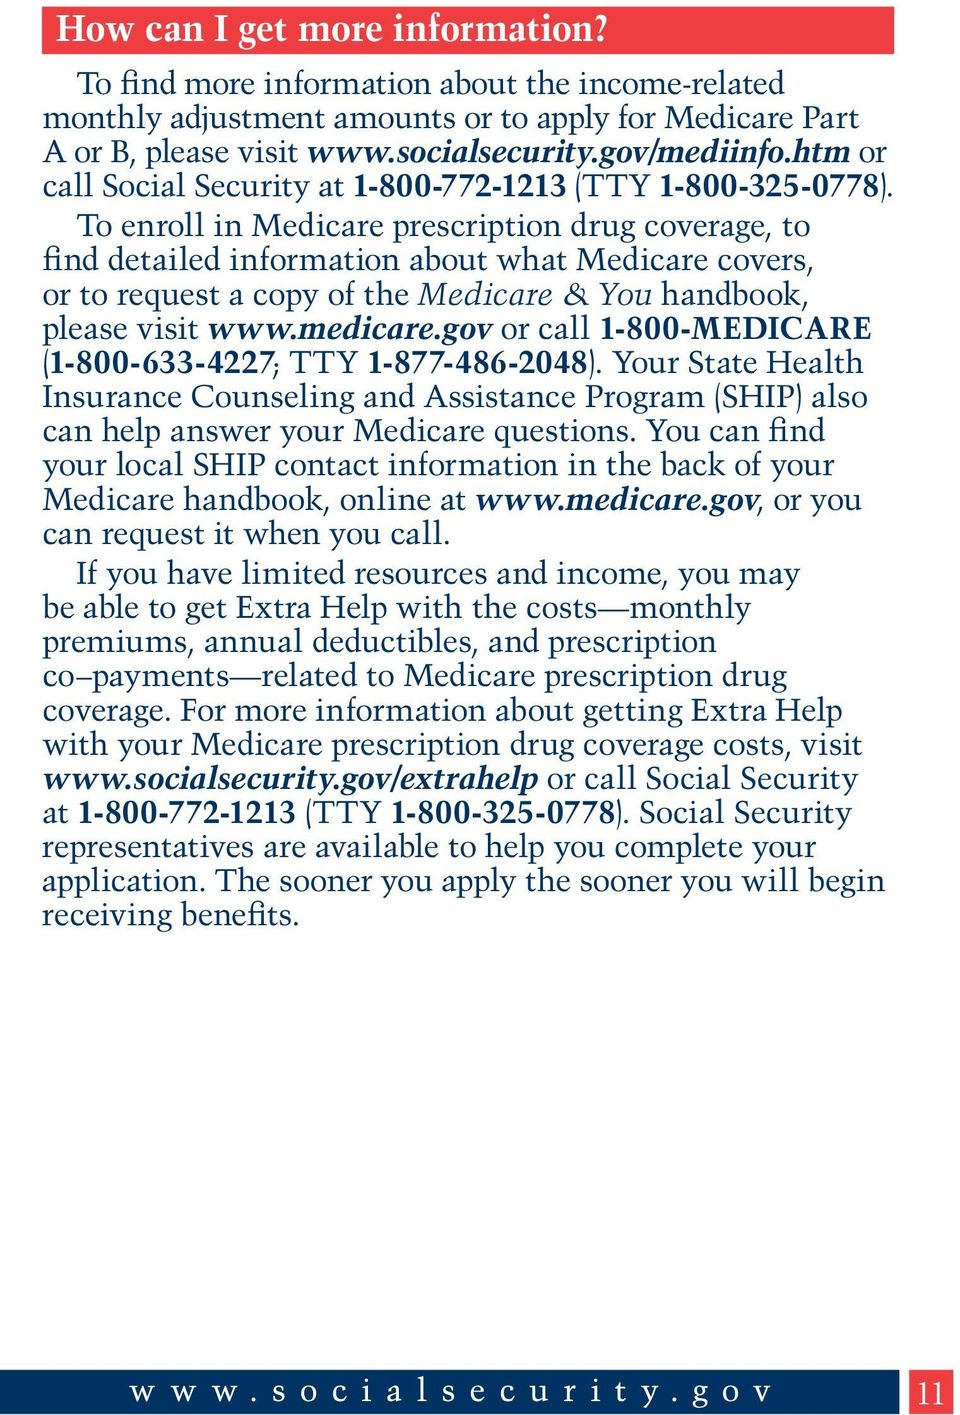 To enroll in Medicare prescription drug coverage, to find detailed information about what Medicare covers, or to request a copy of the Medicare & You handbook, please visit www.medicare.